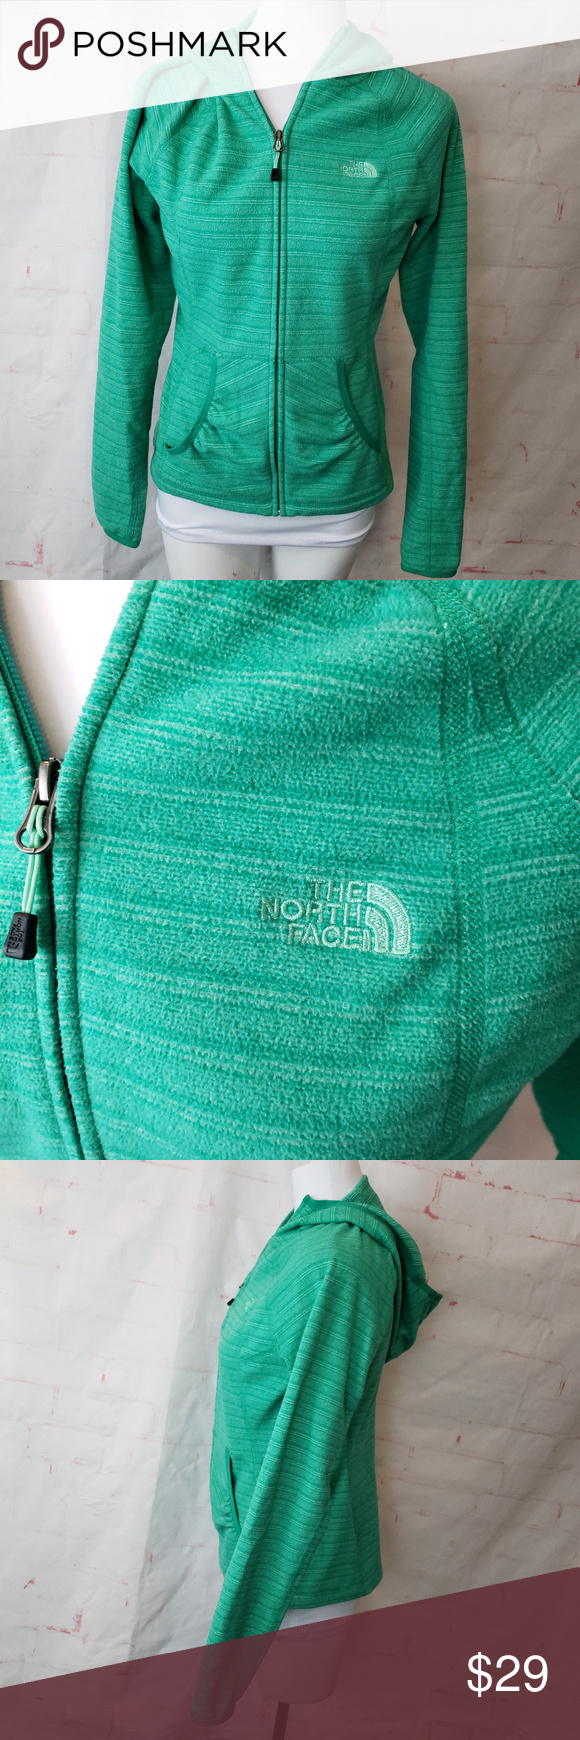 The North Face small full zip space dye green 100% polyester Name written on tag, please see photo.  Measurements are taken with fabric tape and are approximate. Armpit to armpit: 18 armit to bottom hem: 15.5 Across bottom: 18.5 Middle of the back down: 24 The North Face Tops #fabrictape